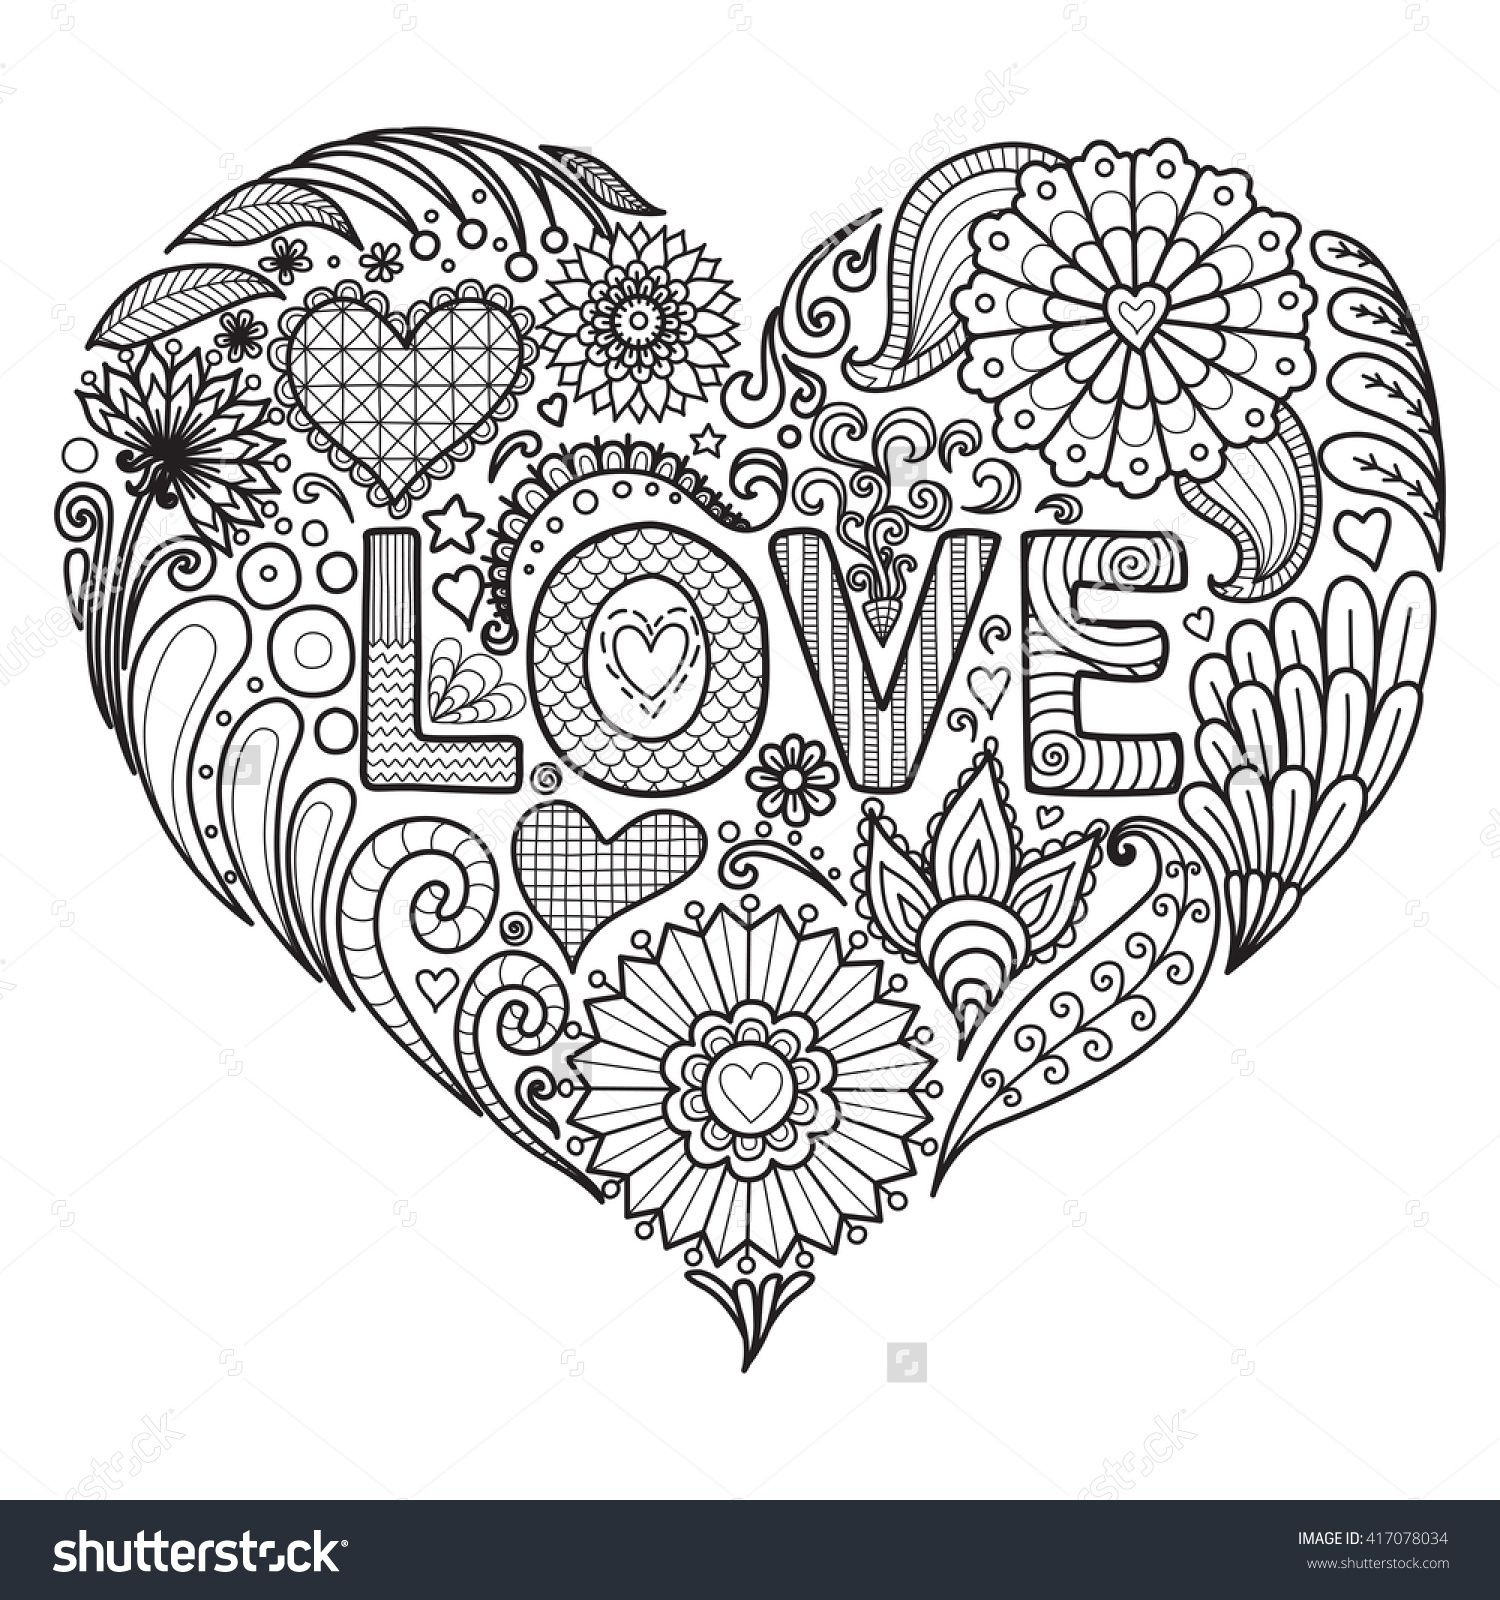 Heart On Flowers Coloring Books For Adult I Shutterstock 417078034